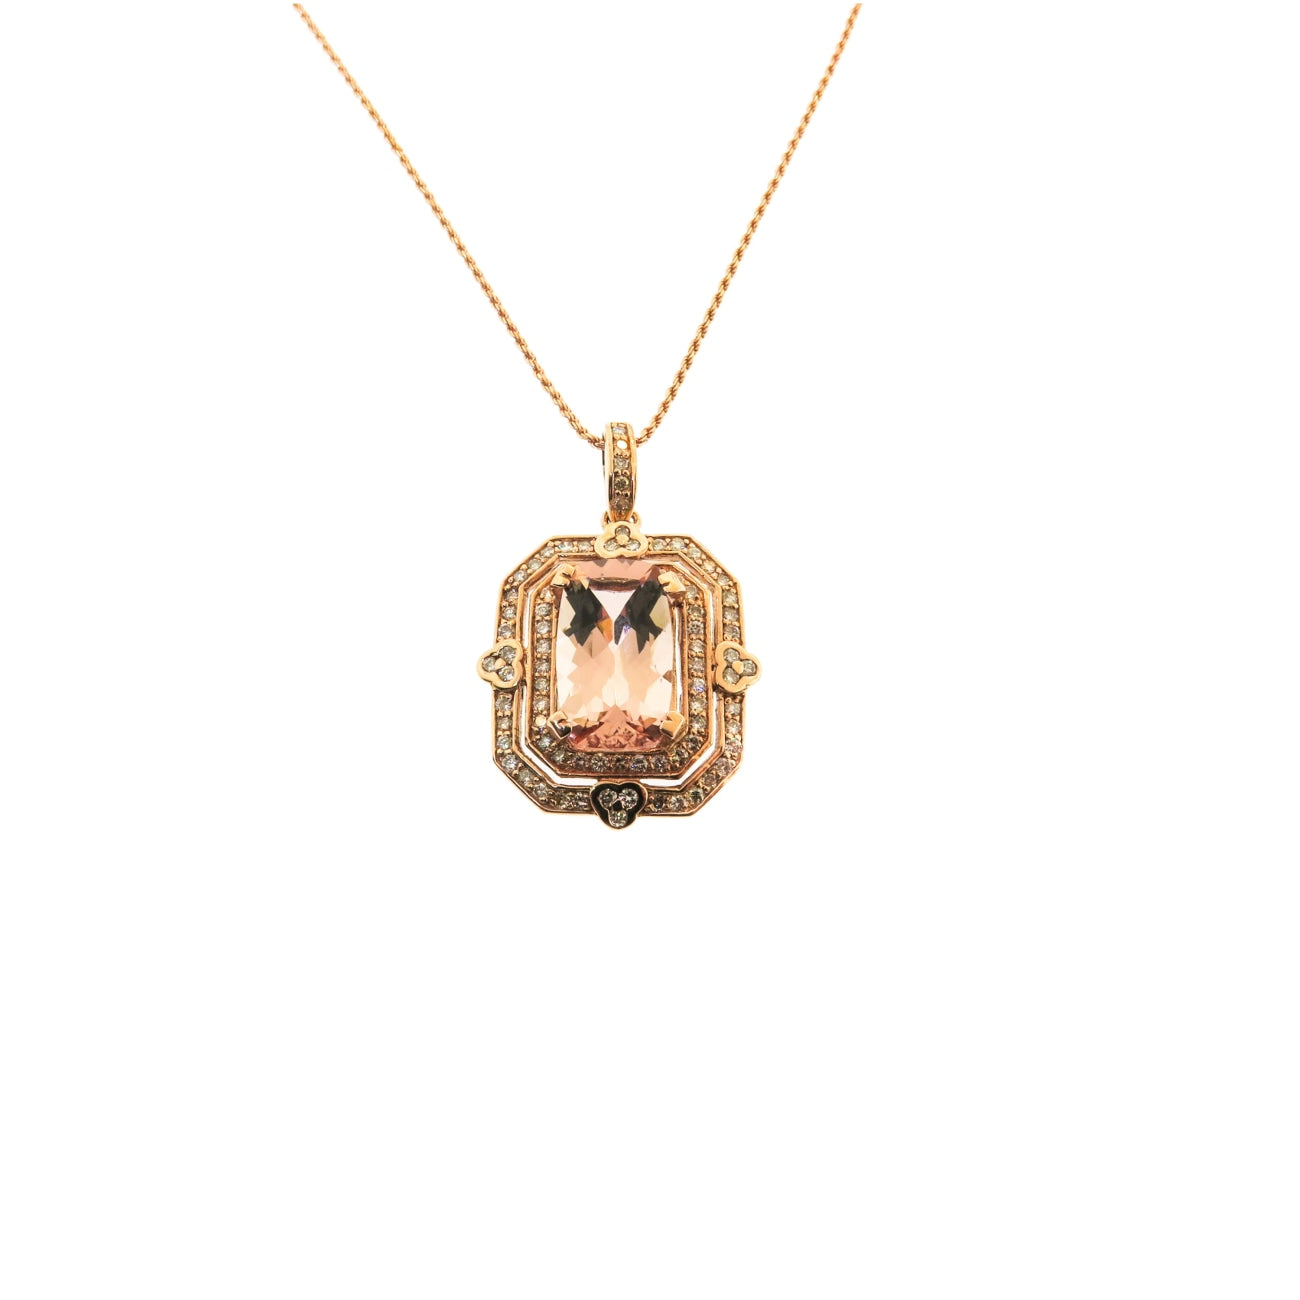 Estate Jewelry Estate Jewelry - Morganite & Diamond Rose Gold Necklace | Manfredi Jewels